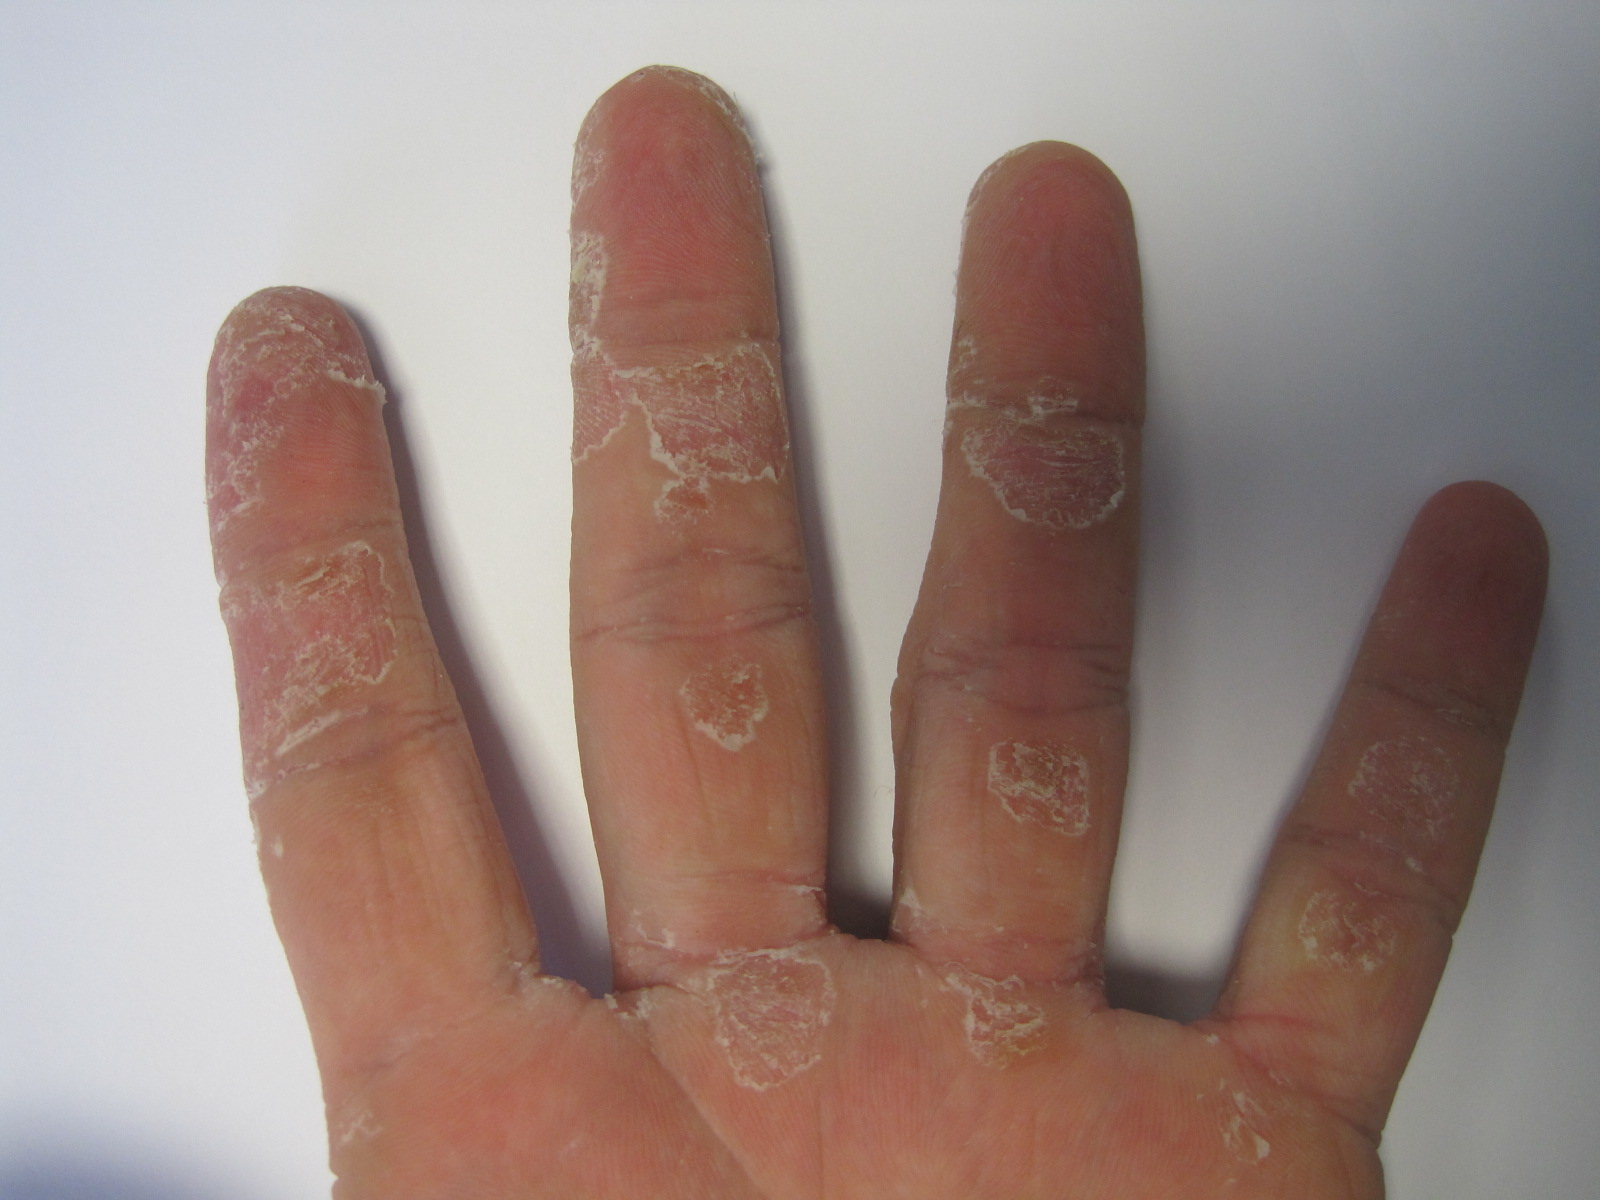 I have really dry skin on my hands - 336.5KB